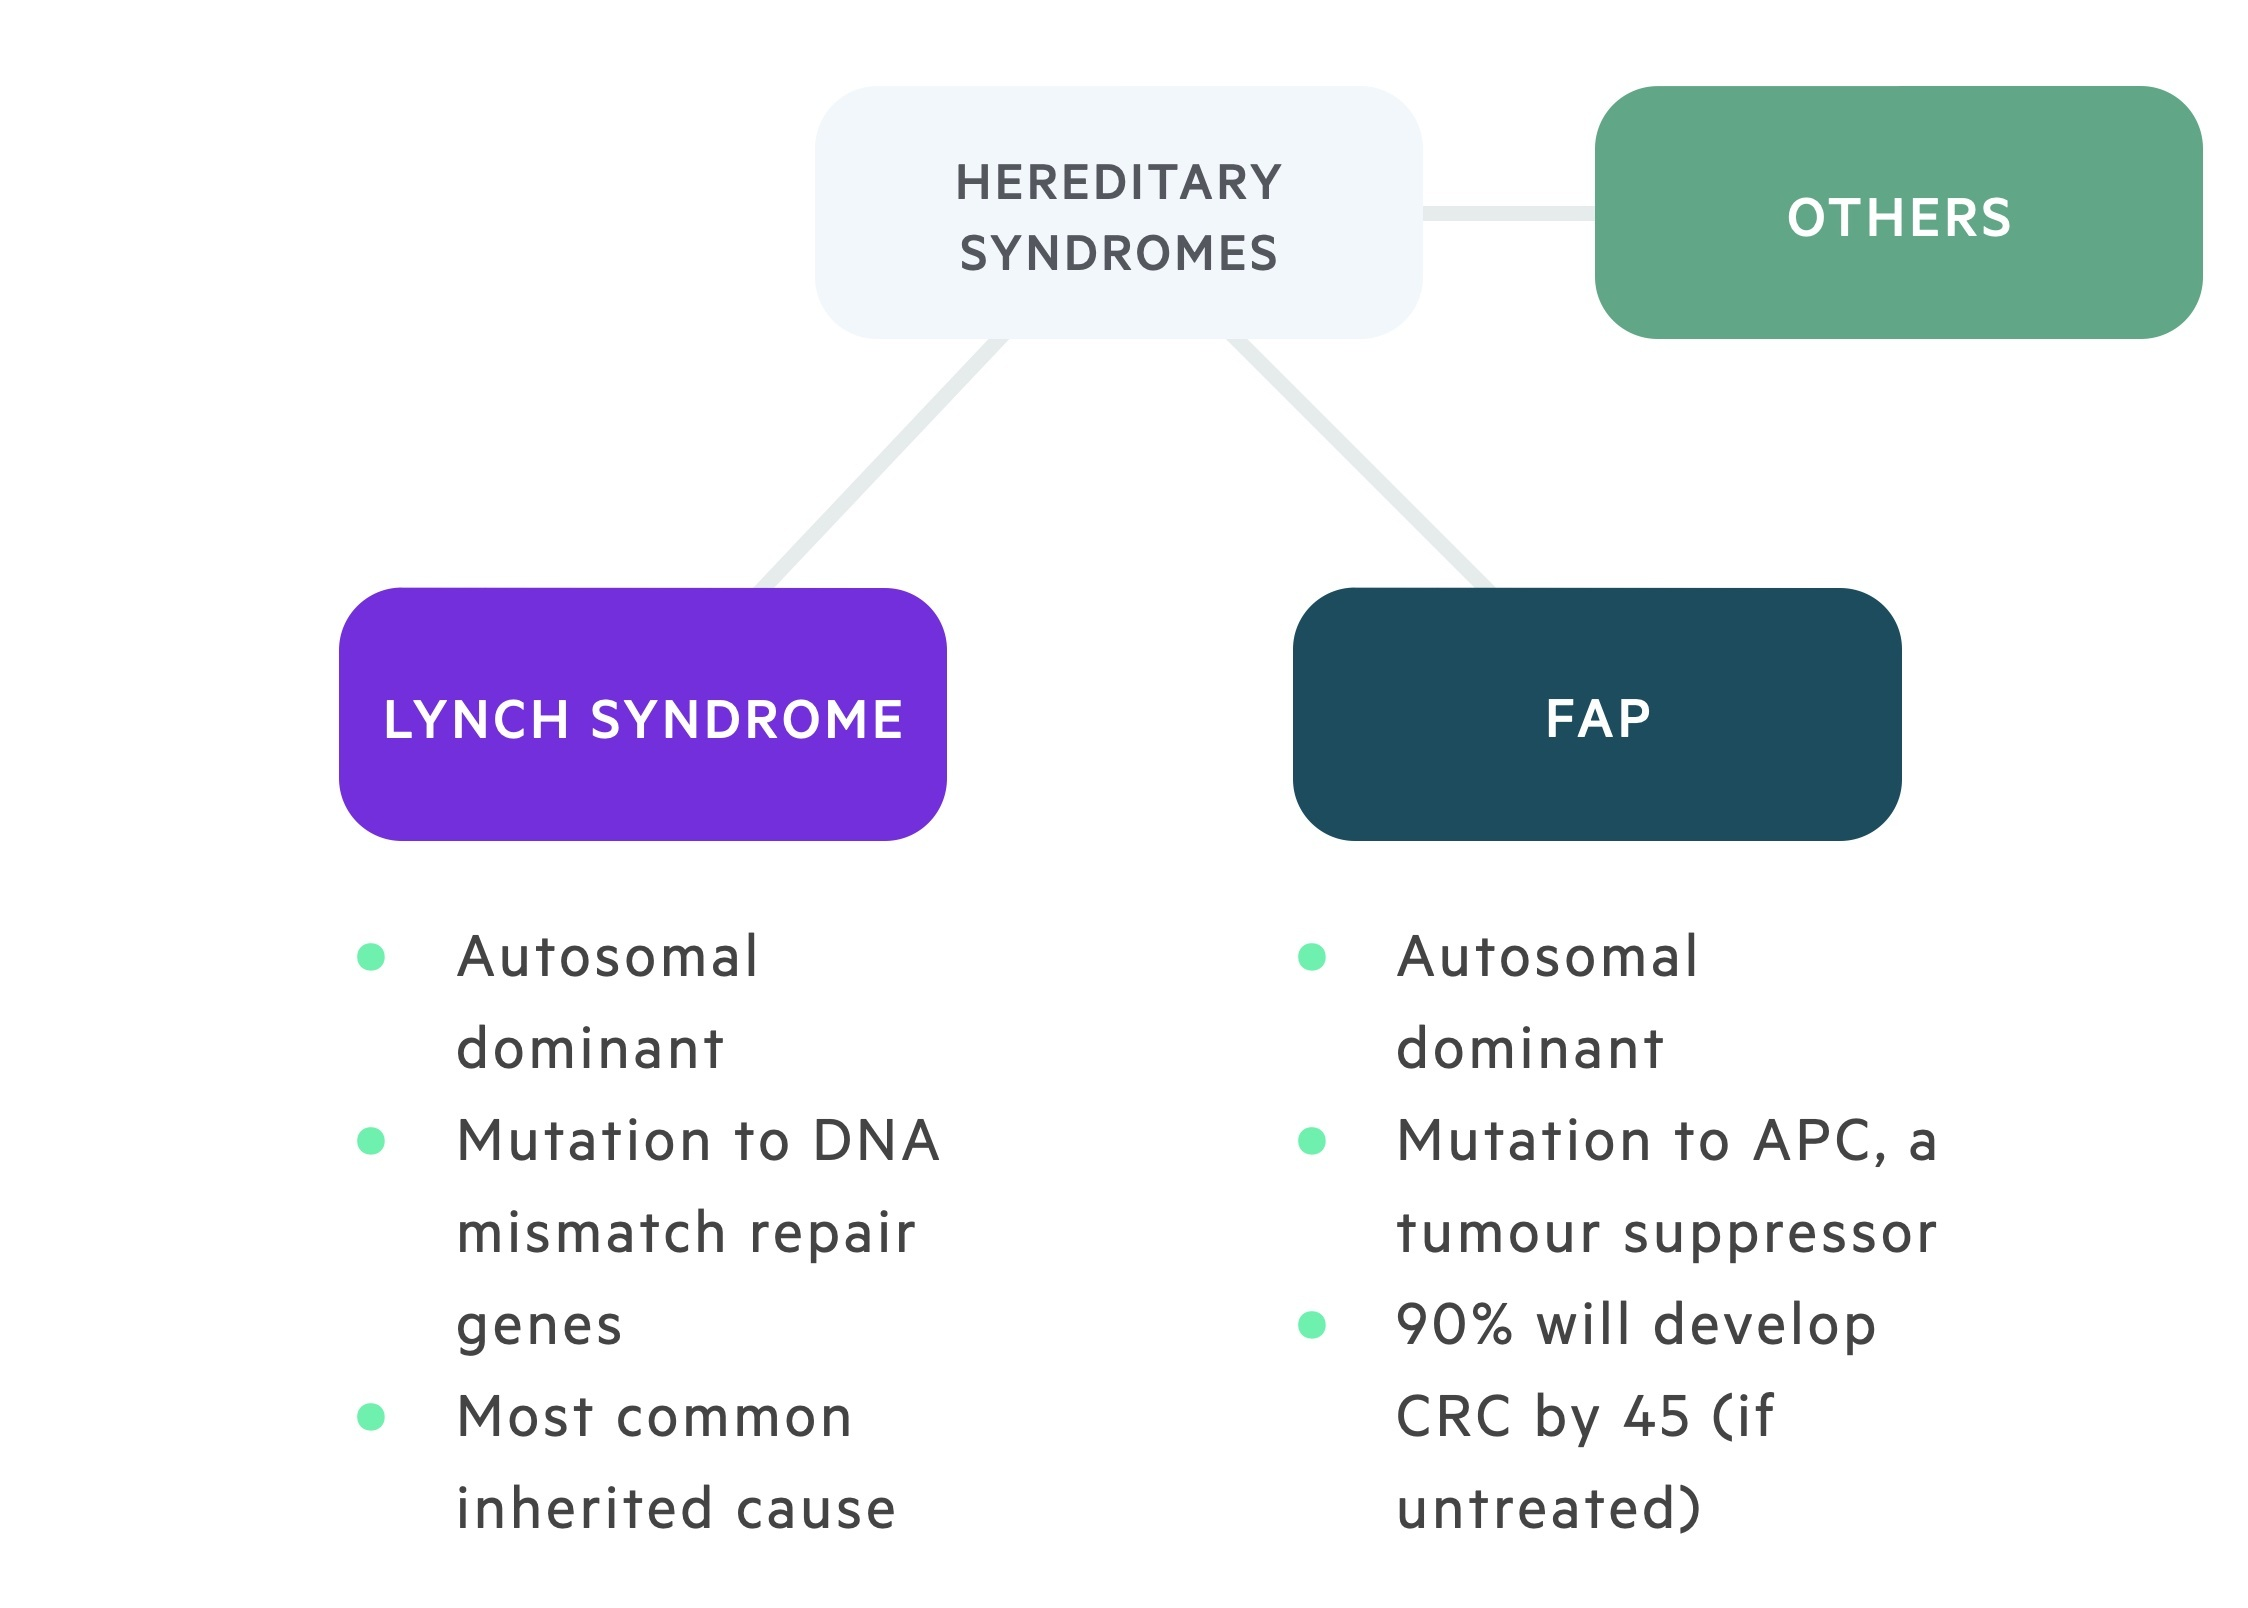 Hereditary syndromes associated with colorectal cancer